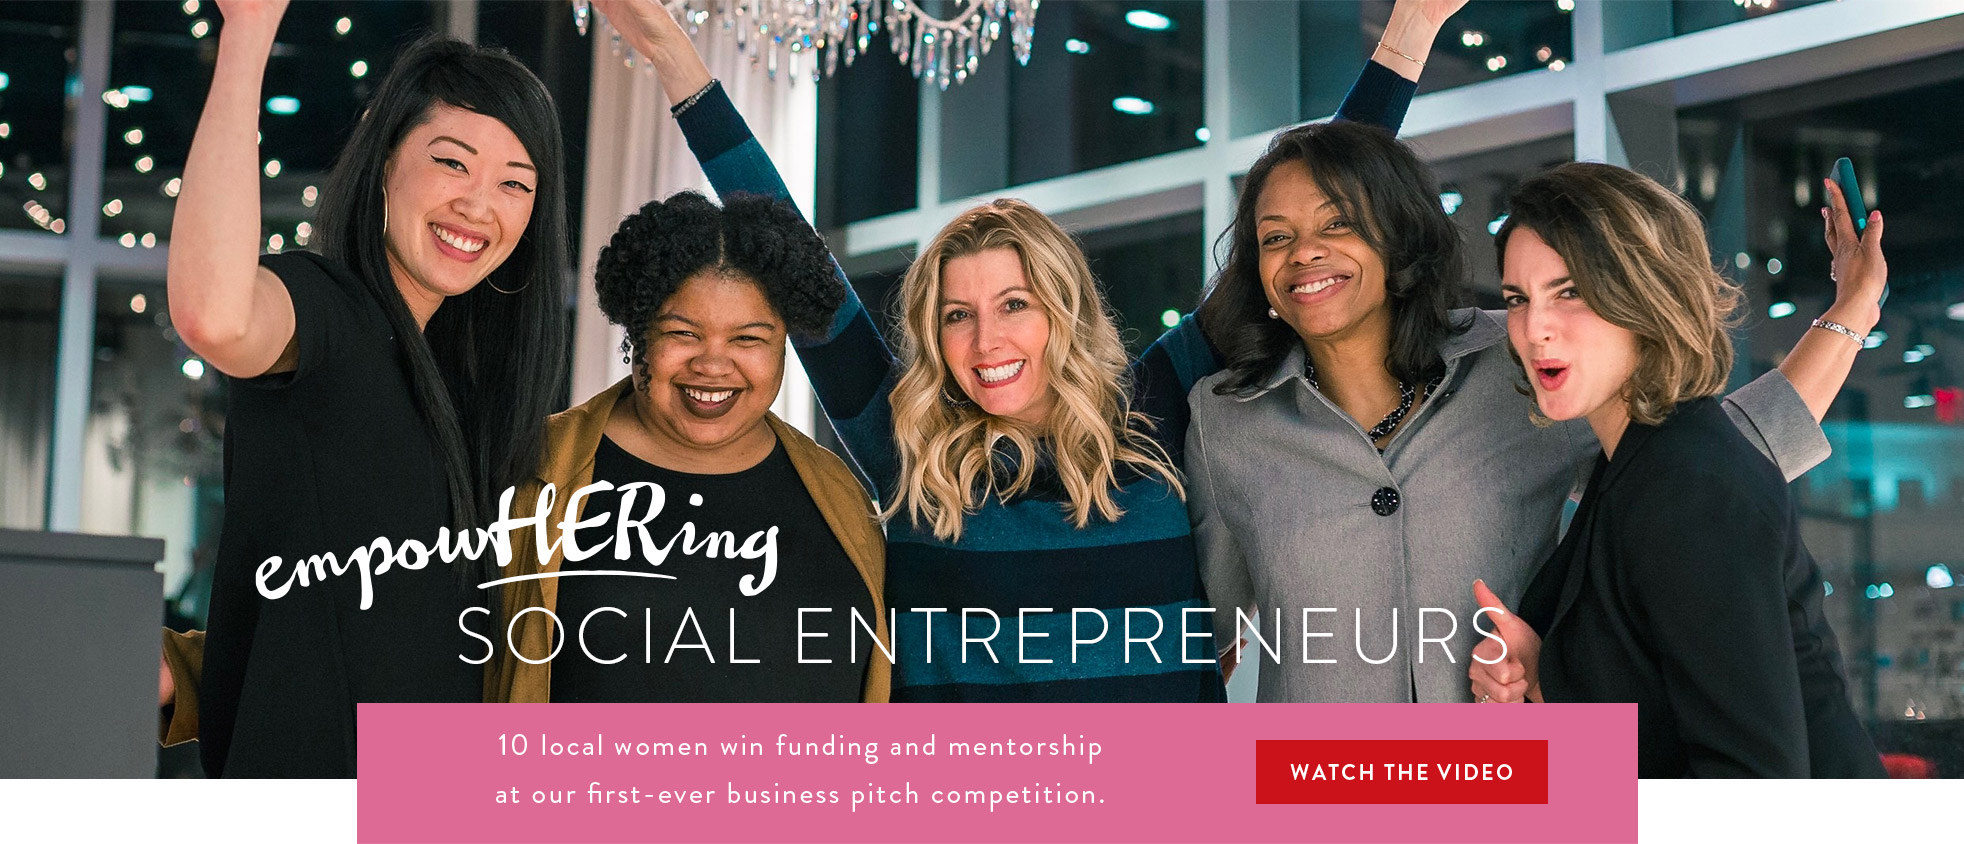 EmpowHERing Social Entrepreneurs: 10 local women win funding and mentorship at our first-ever business pitch comeptition. WATCH THE VIDEO!